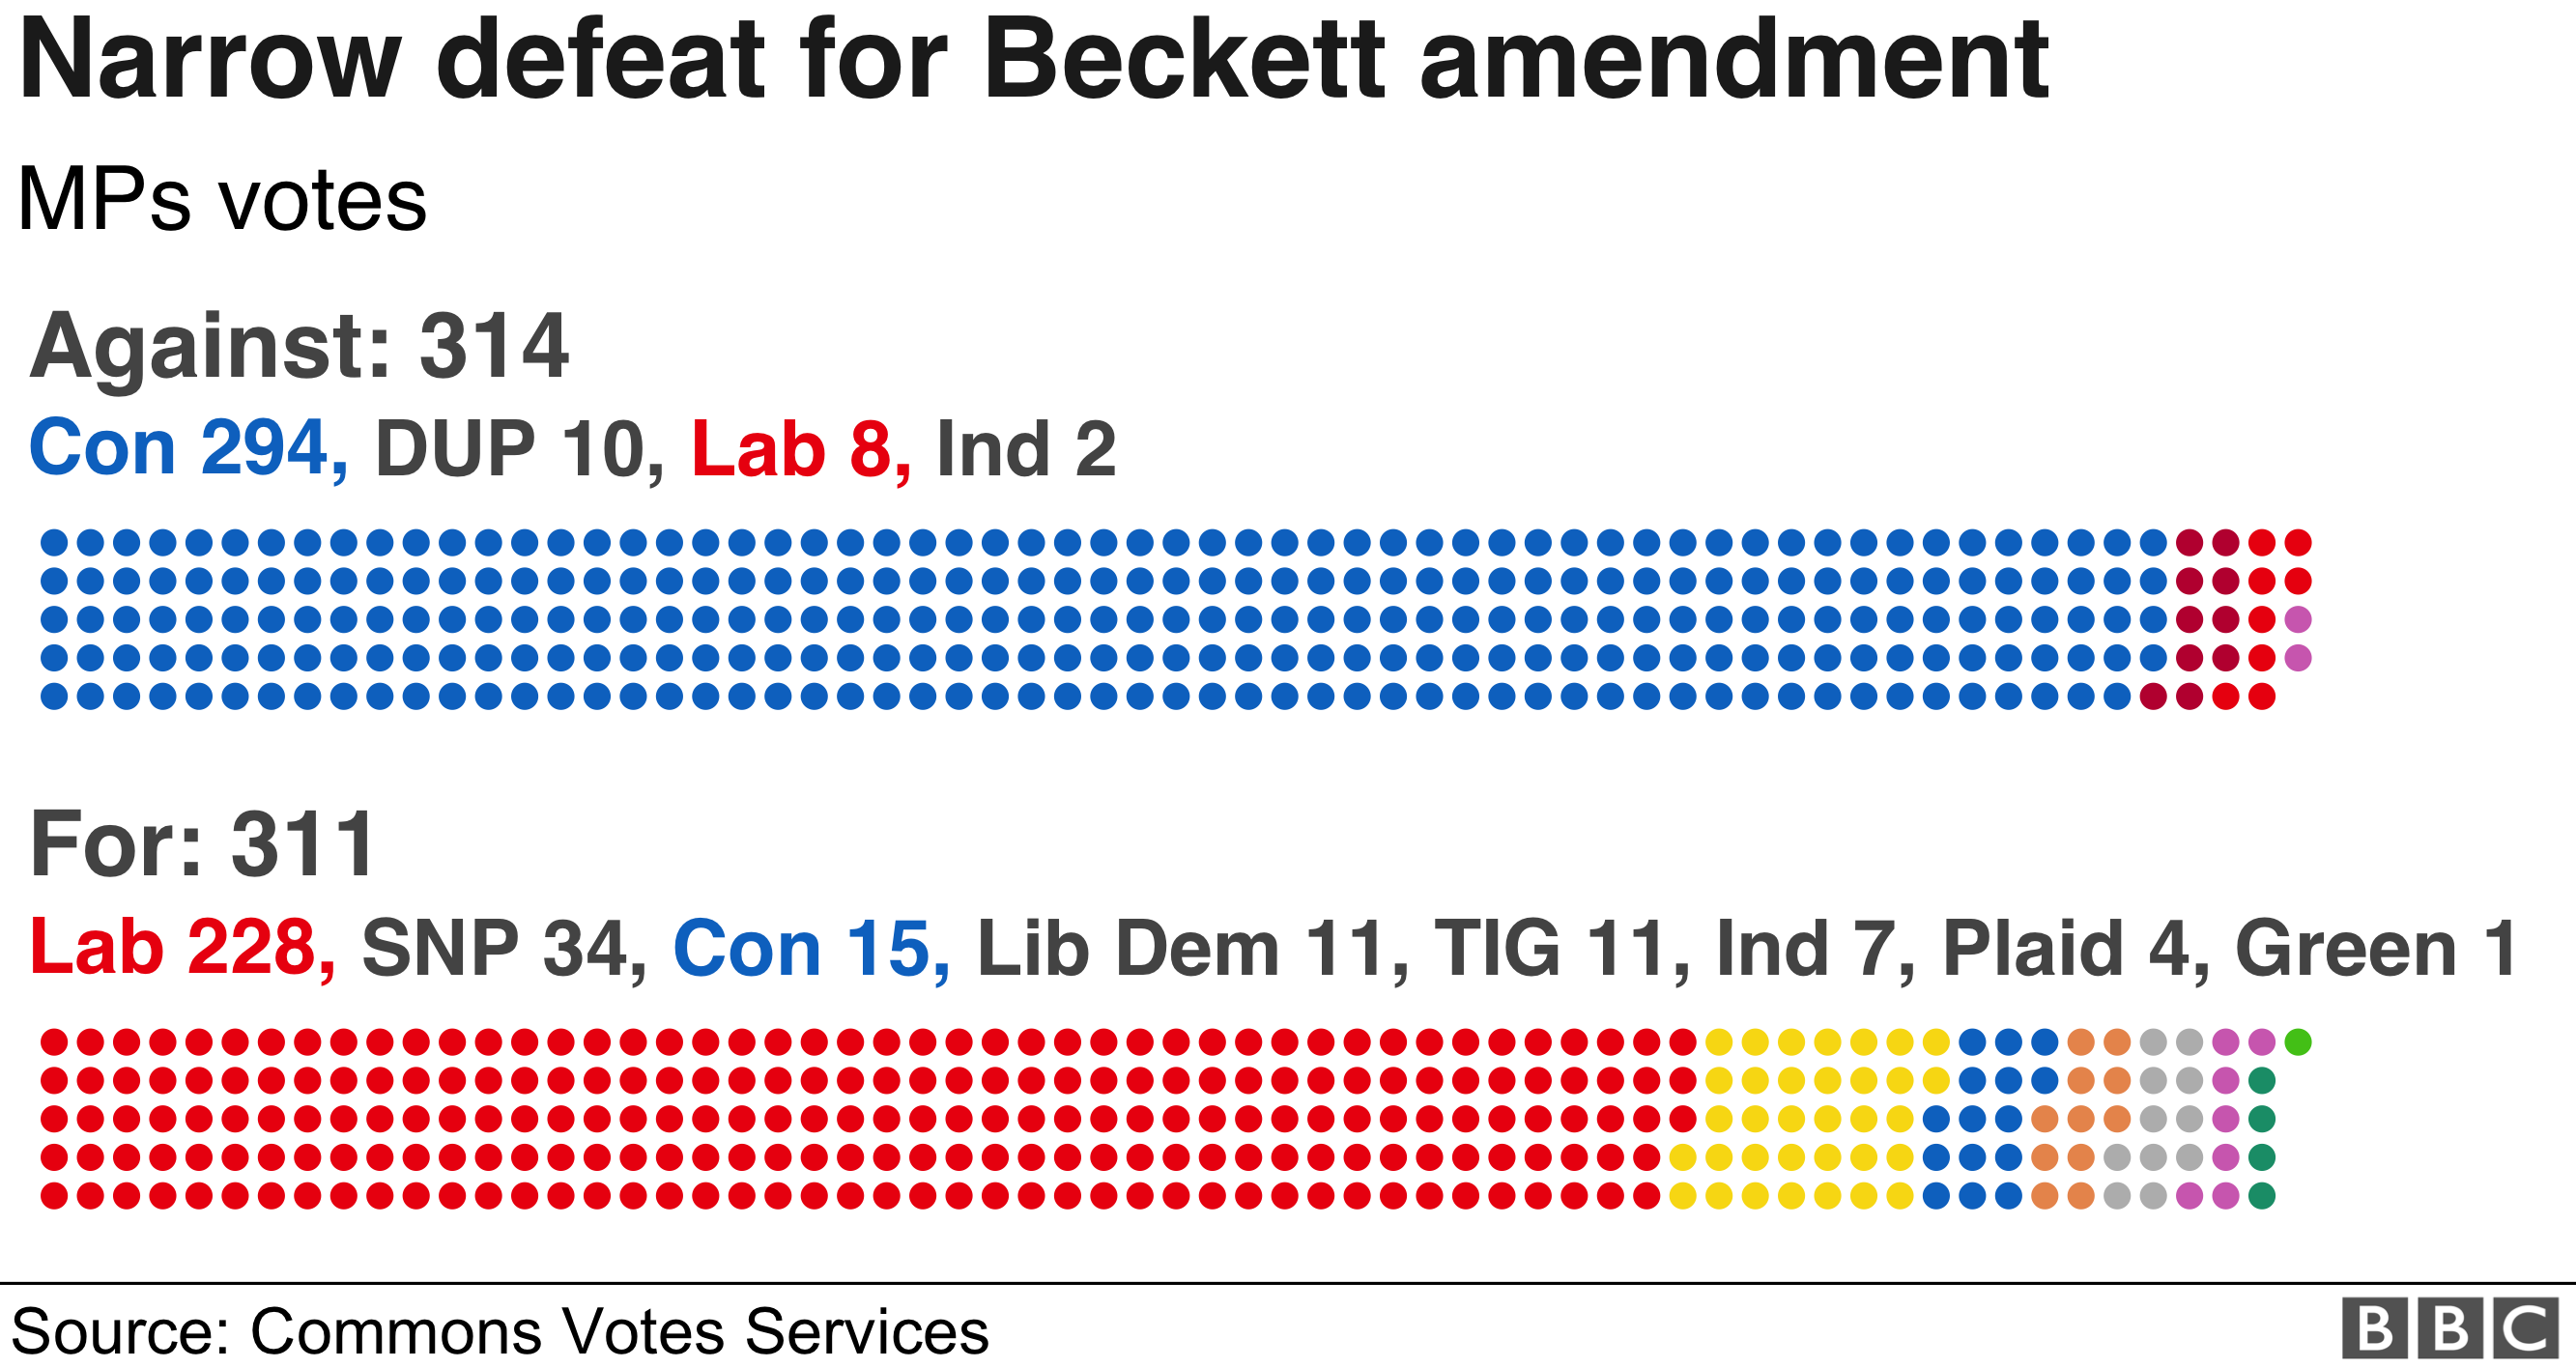 Detail of the vote on the Beckett amendment